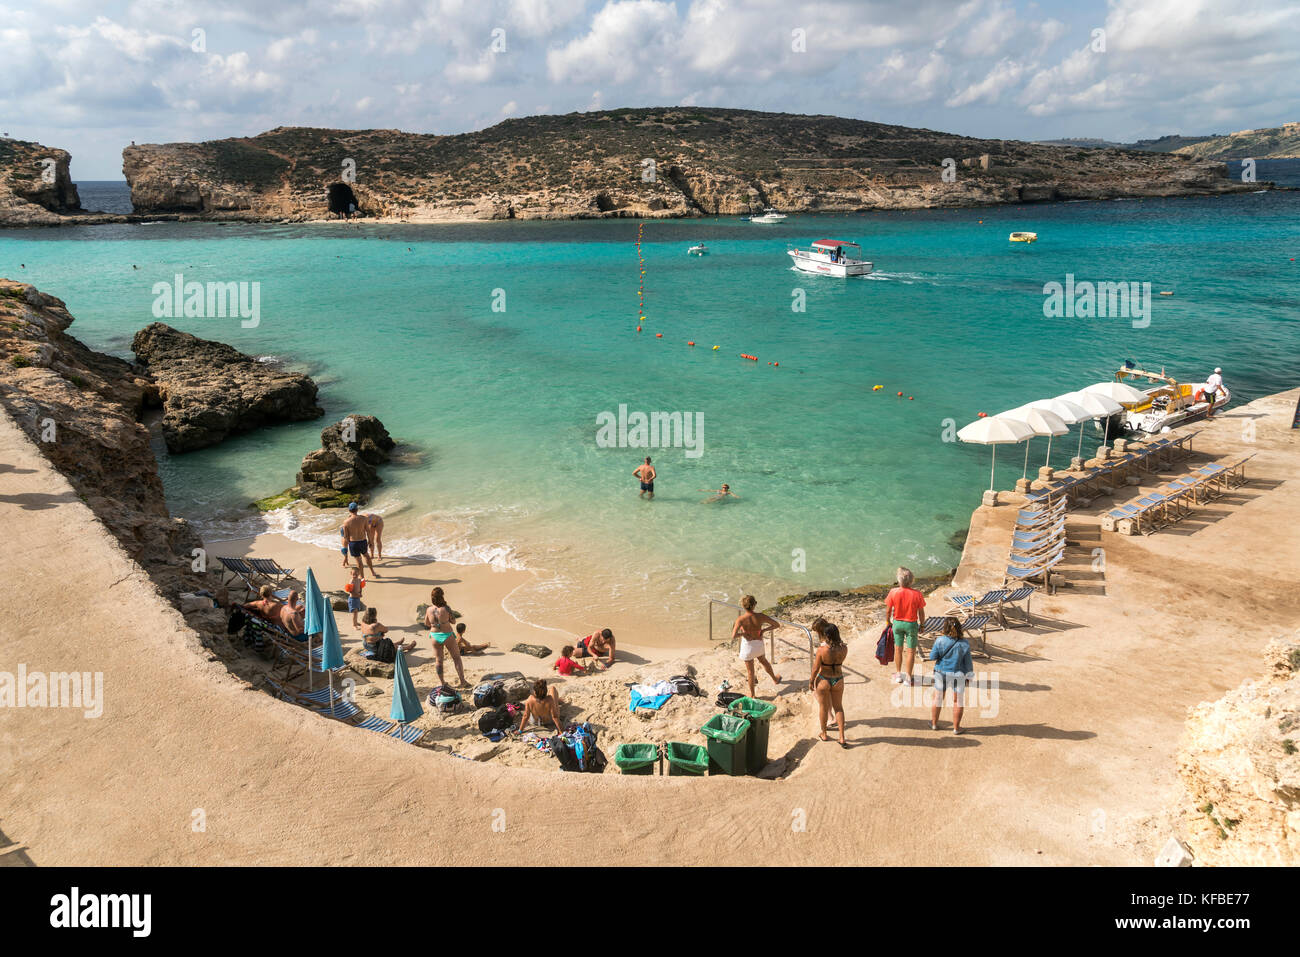 blue lagoon malta stock photos blue lagoon malta stock images alamy. Black Bedroom Furniture Sets. Home Design Ideas